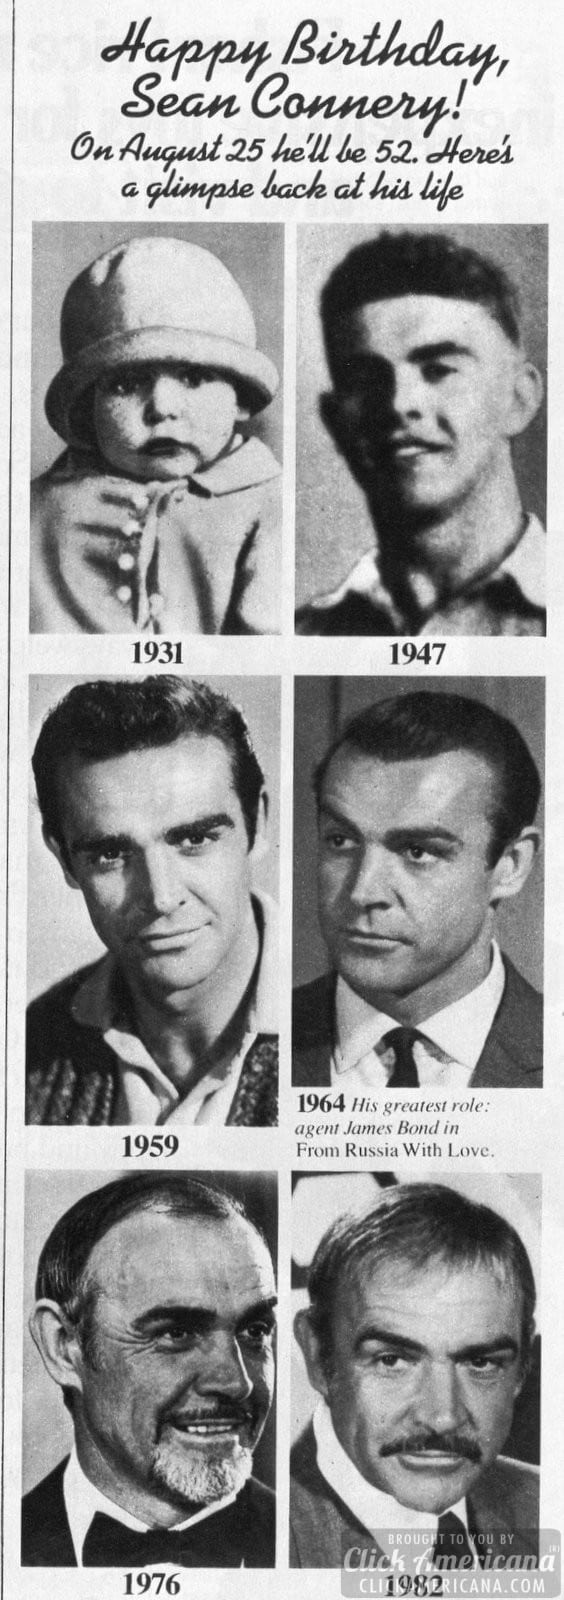 young-sean-connery-thru-years-aug-1982